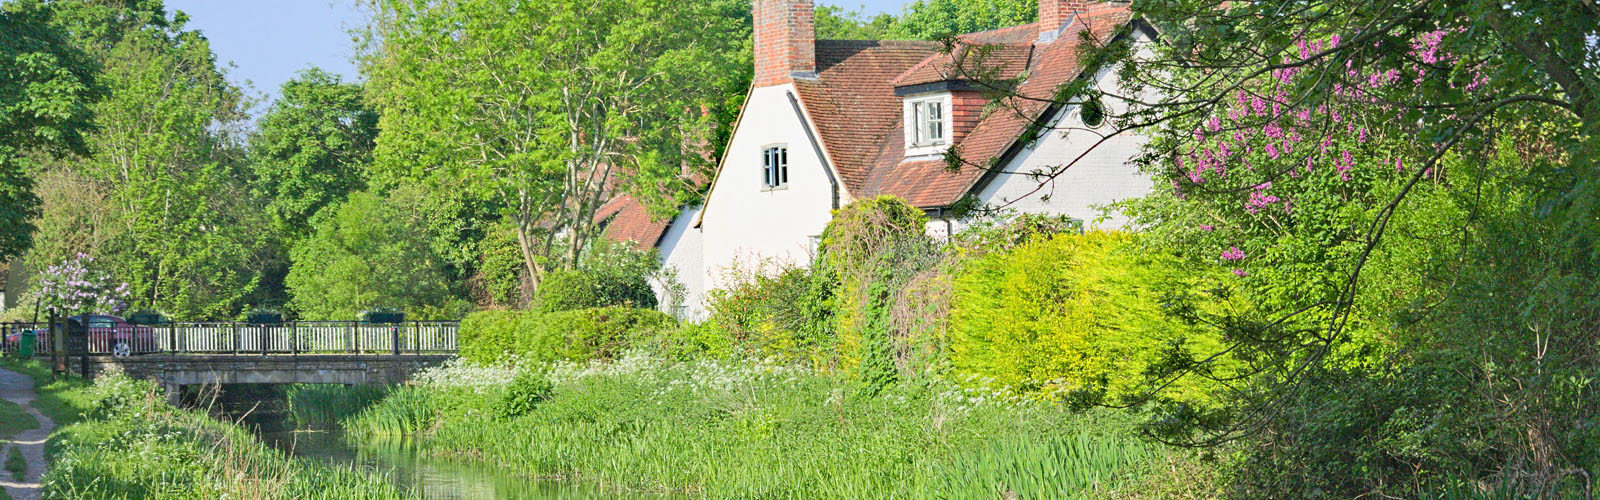 Old Cottage Reflected in the Wendover Canal during Spring.